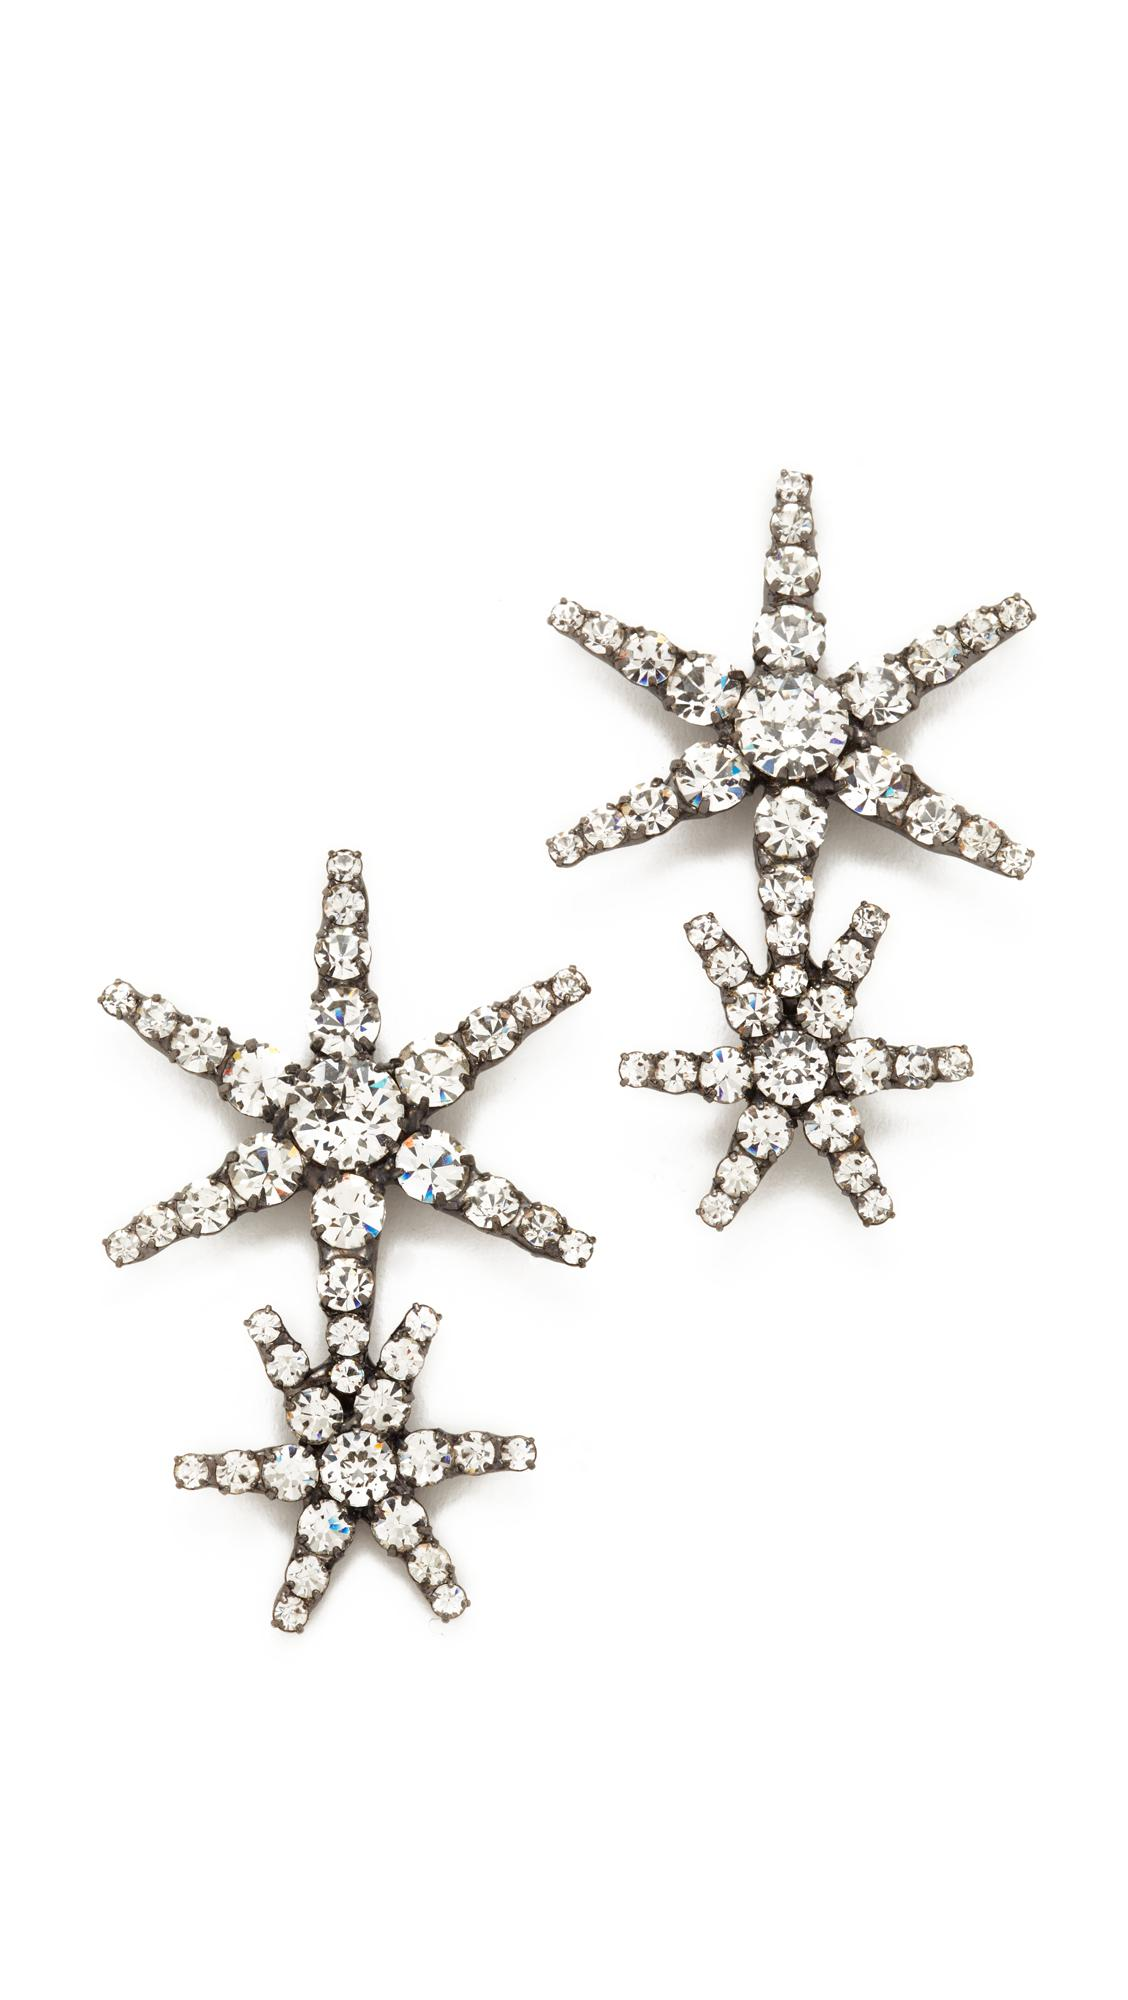 Starburst crystal earrings Jennifer Behr 7E9U69on6